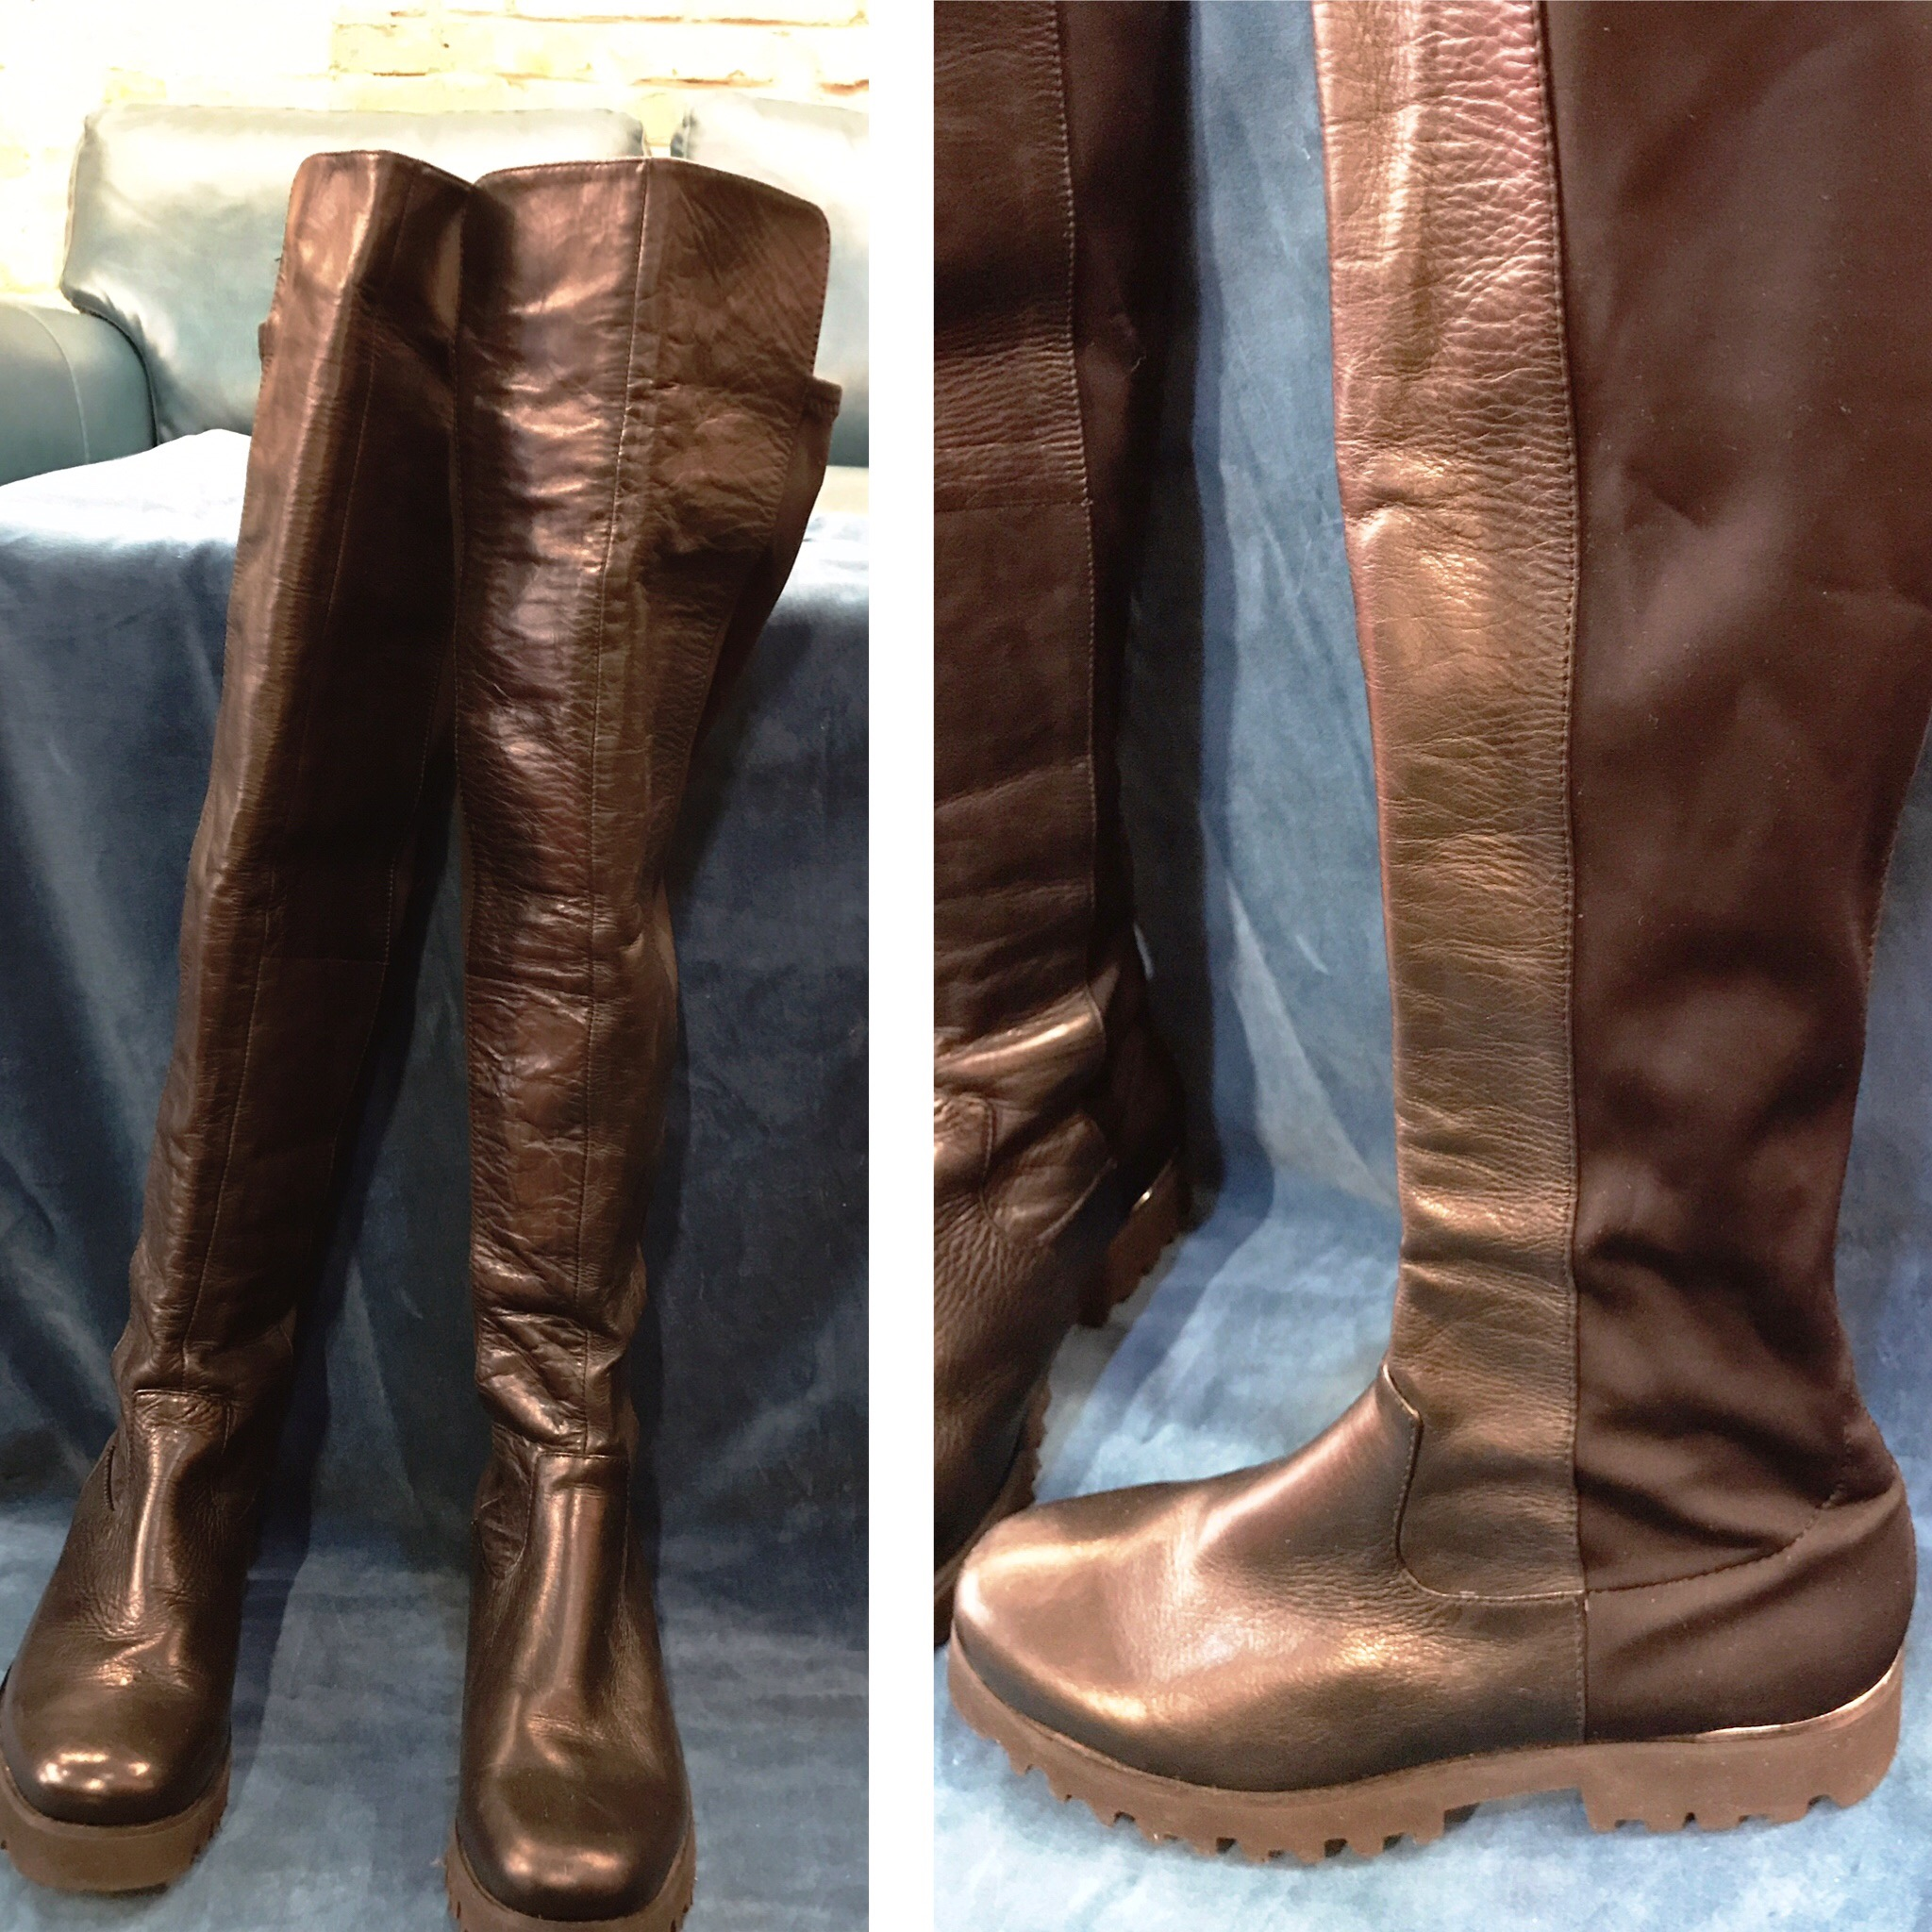 Black Pliner boots with stretchy calf, $46, size 6